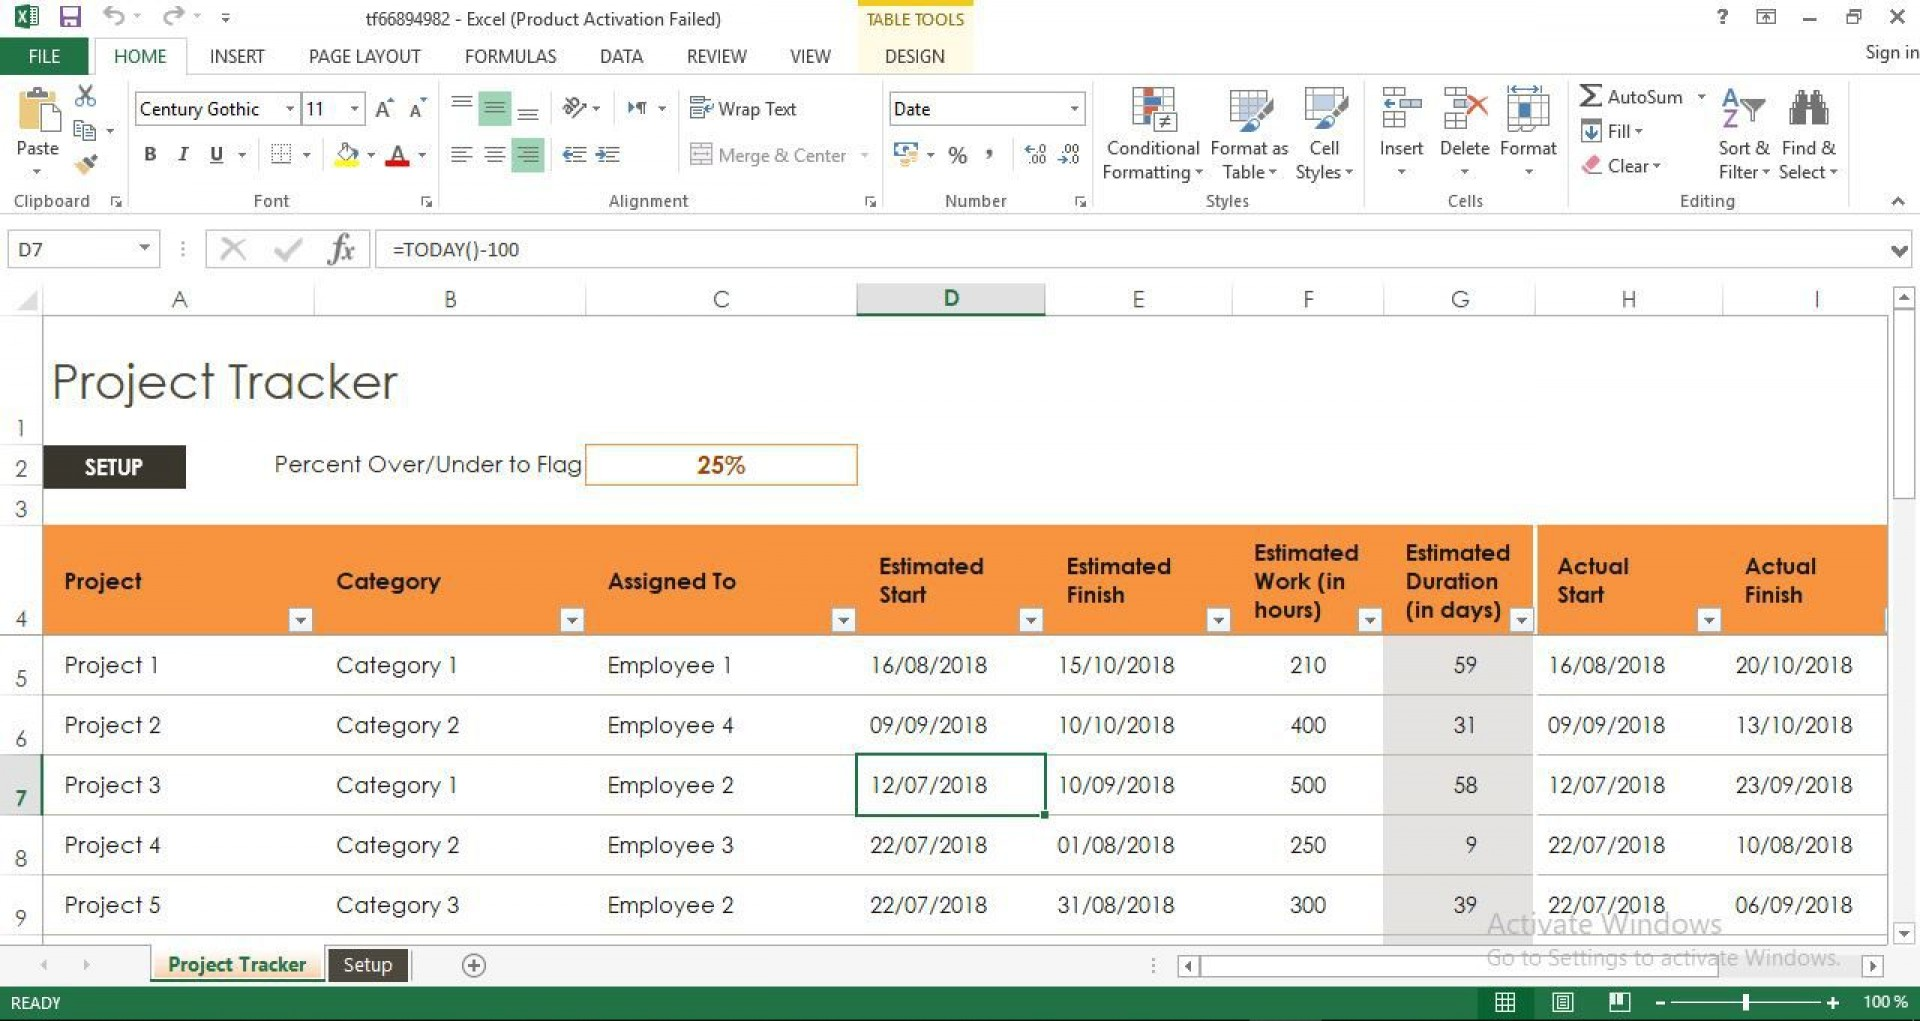 009 Remarkable Project Management Tracking Template Free Excel Idea  Dashboard Best Construction1920